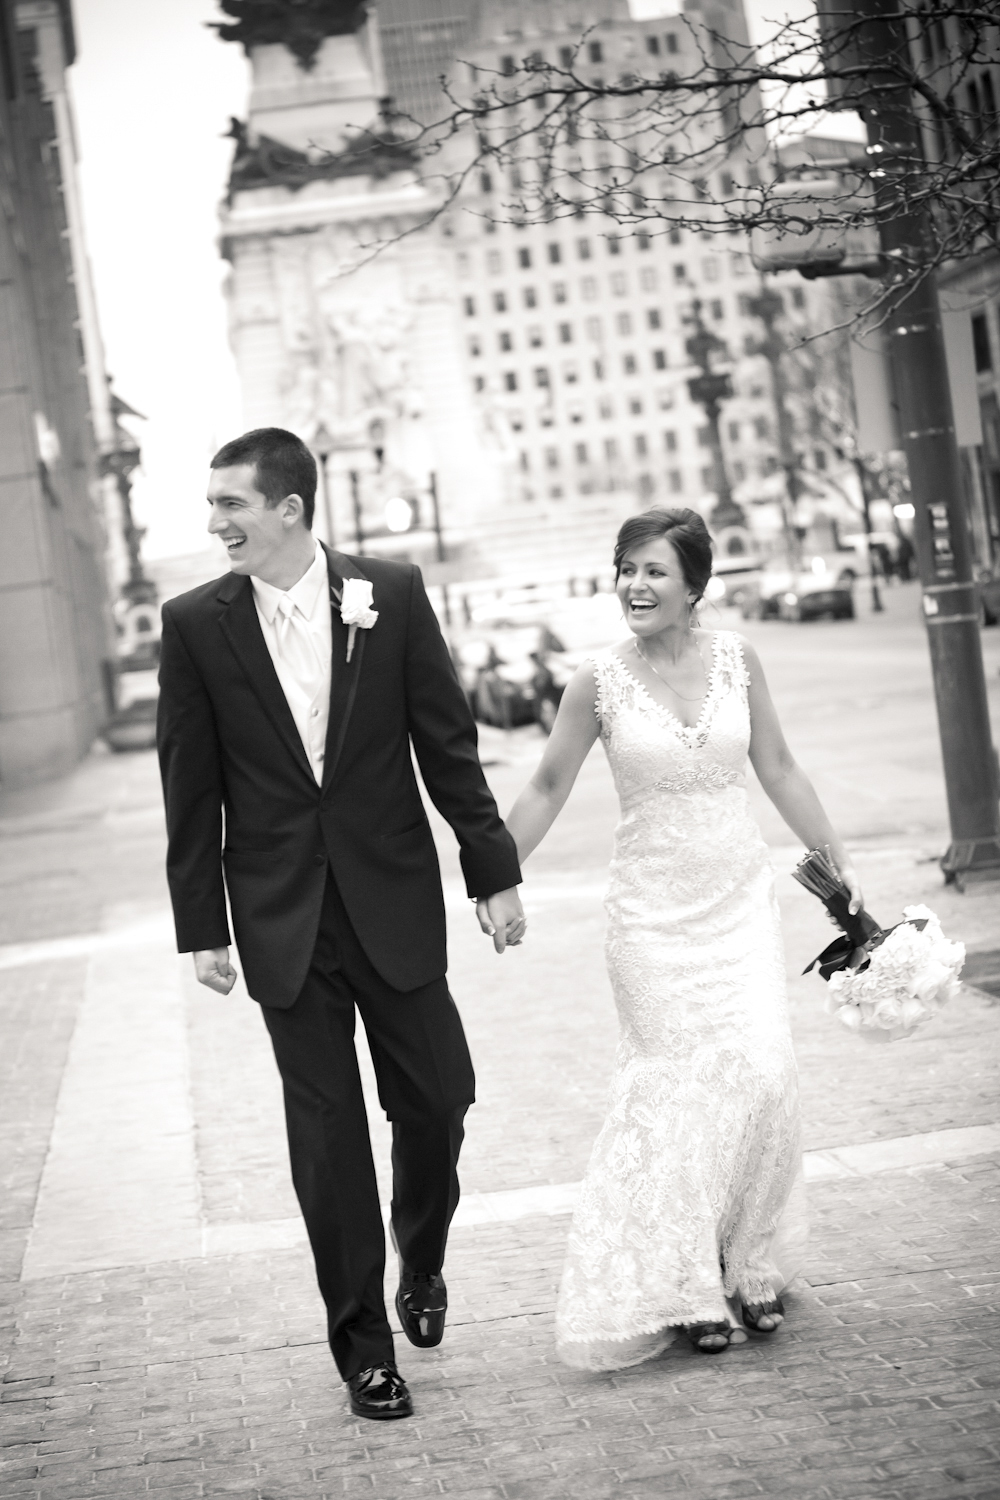 Indianapolis-Indiana-Wedding-Photographer-Crowes-Eye-Photography-Monument-Circle-laughter-Bride-and-Groom.jpg